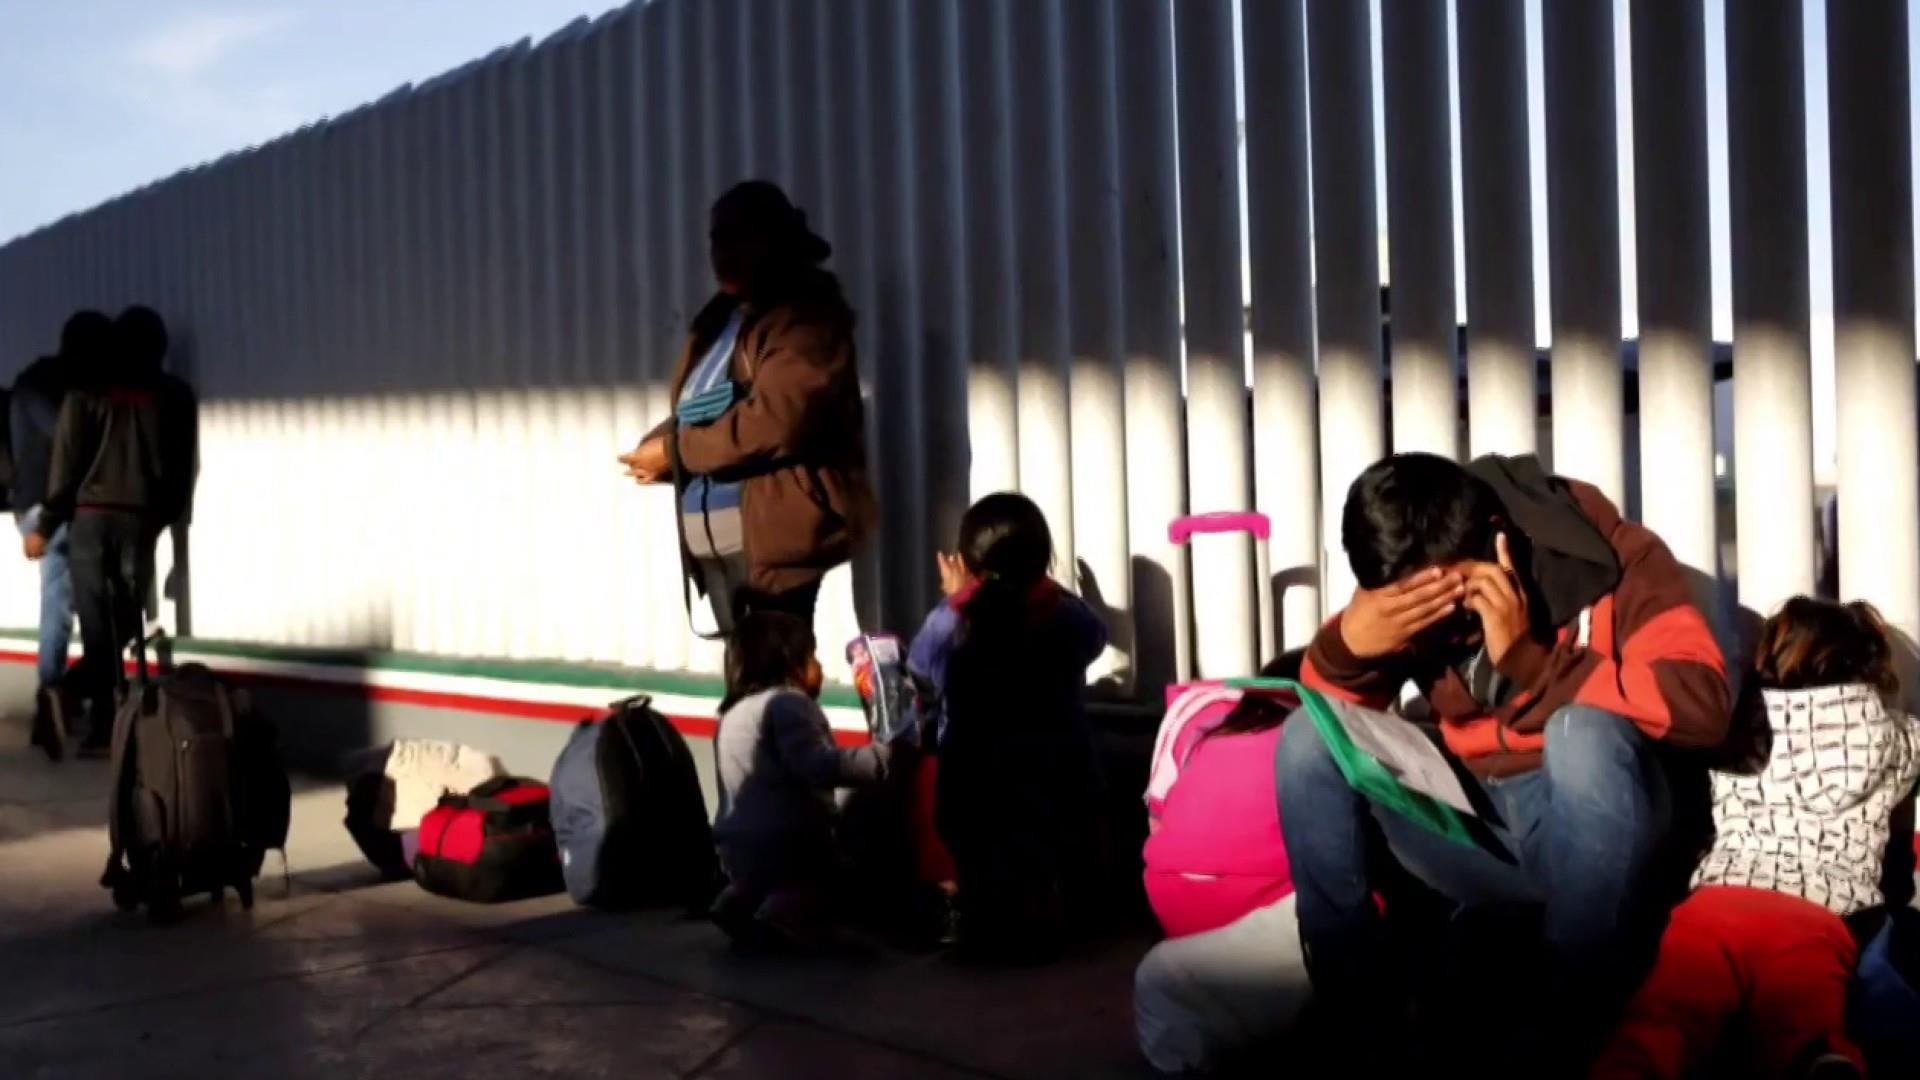 White House considering plan to block Central American migrants from U.S.